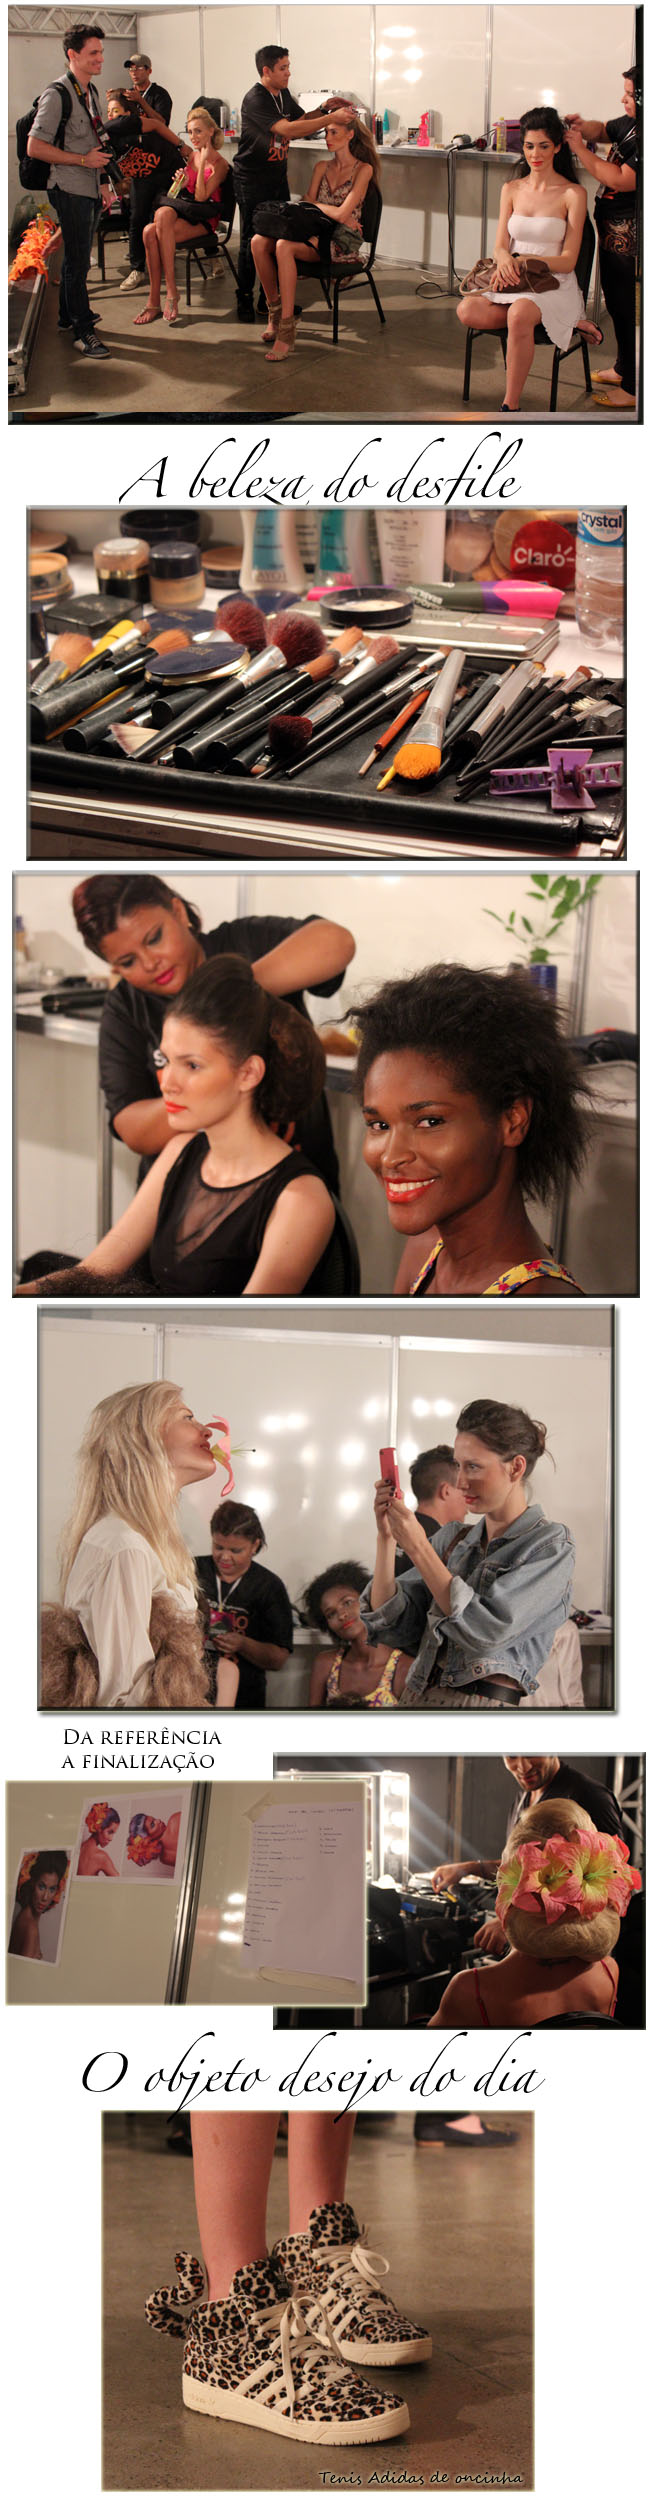 backstage, dragao fashion, dragao fashion fortaleza, fortaleza, dices de fortaleza